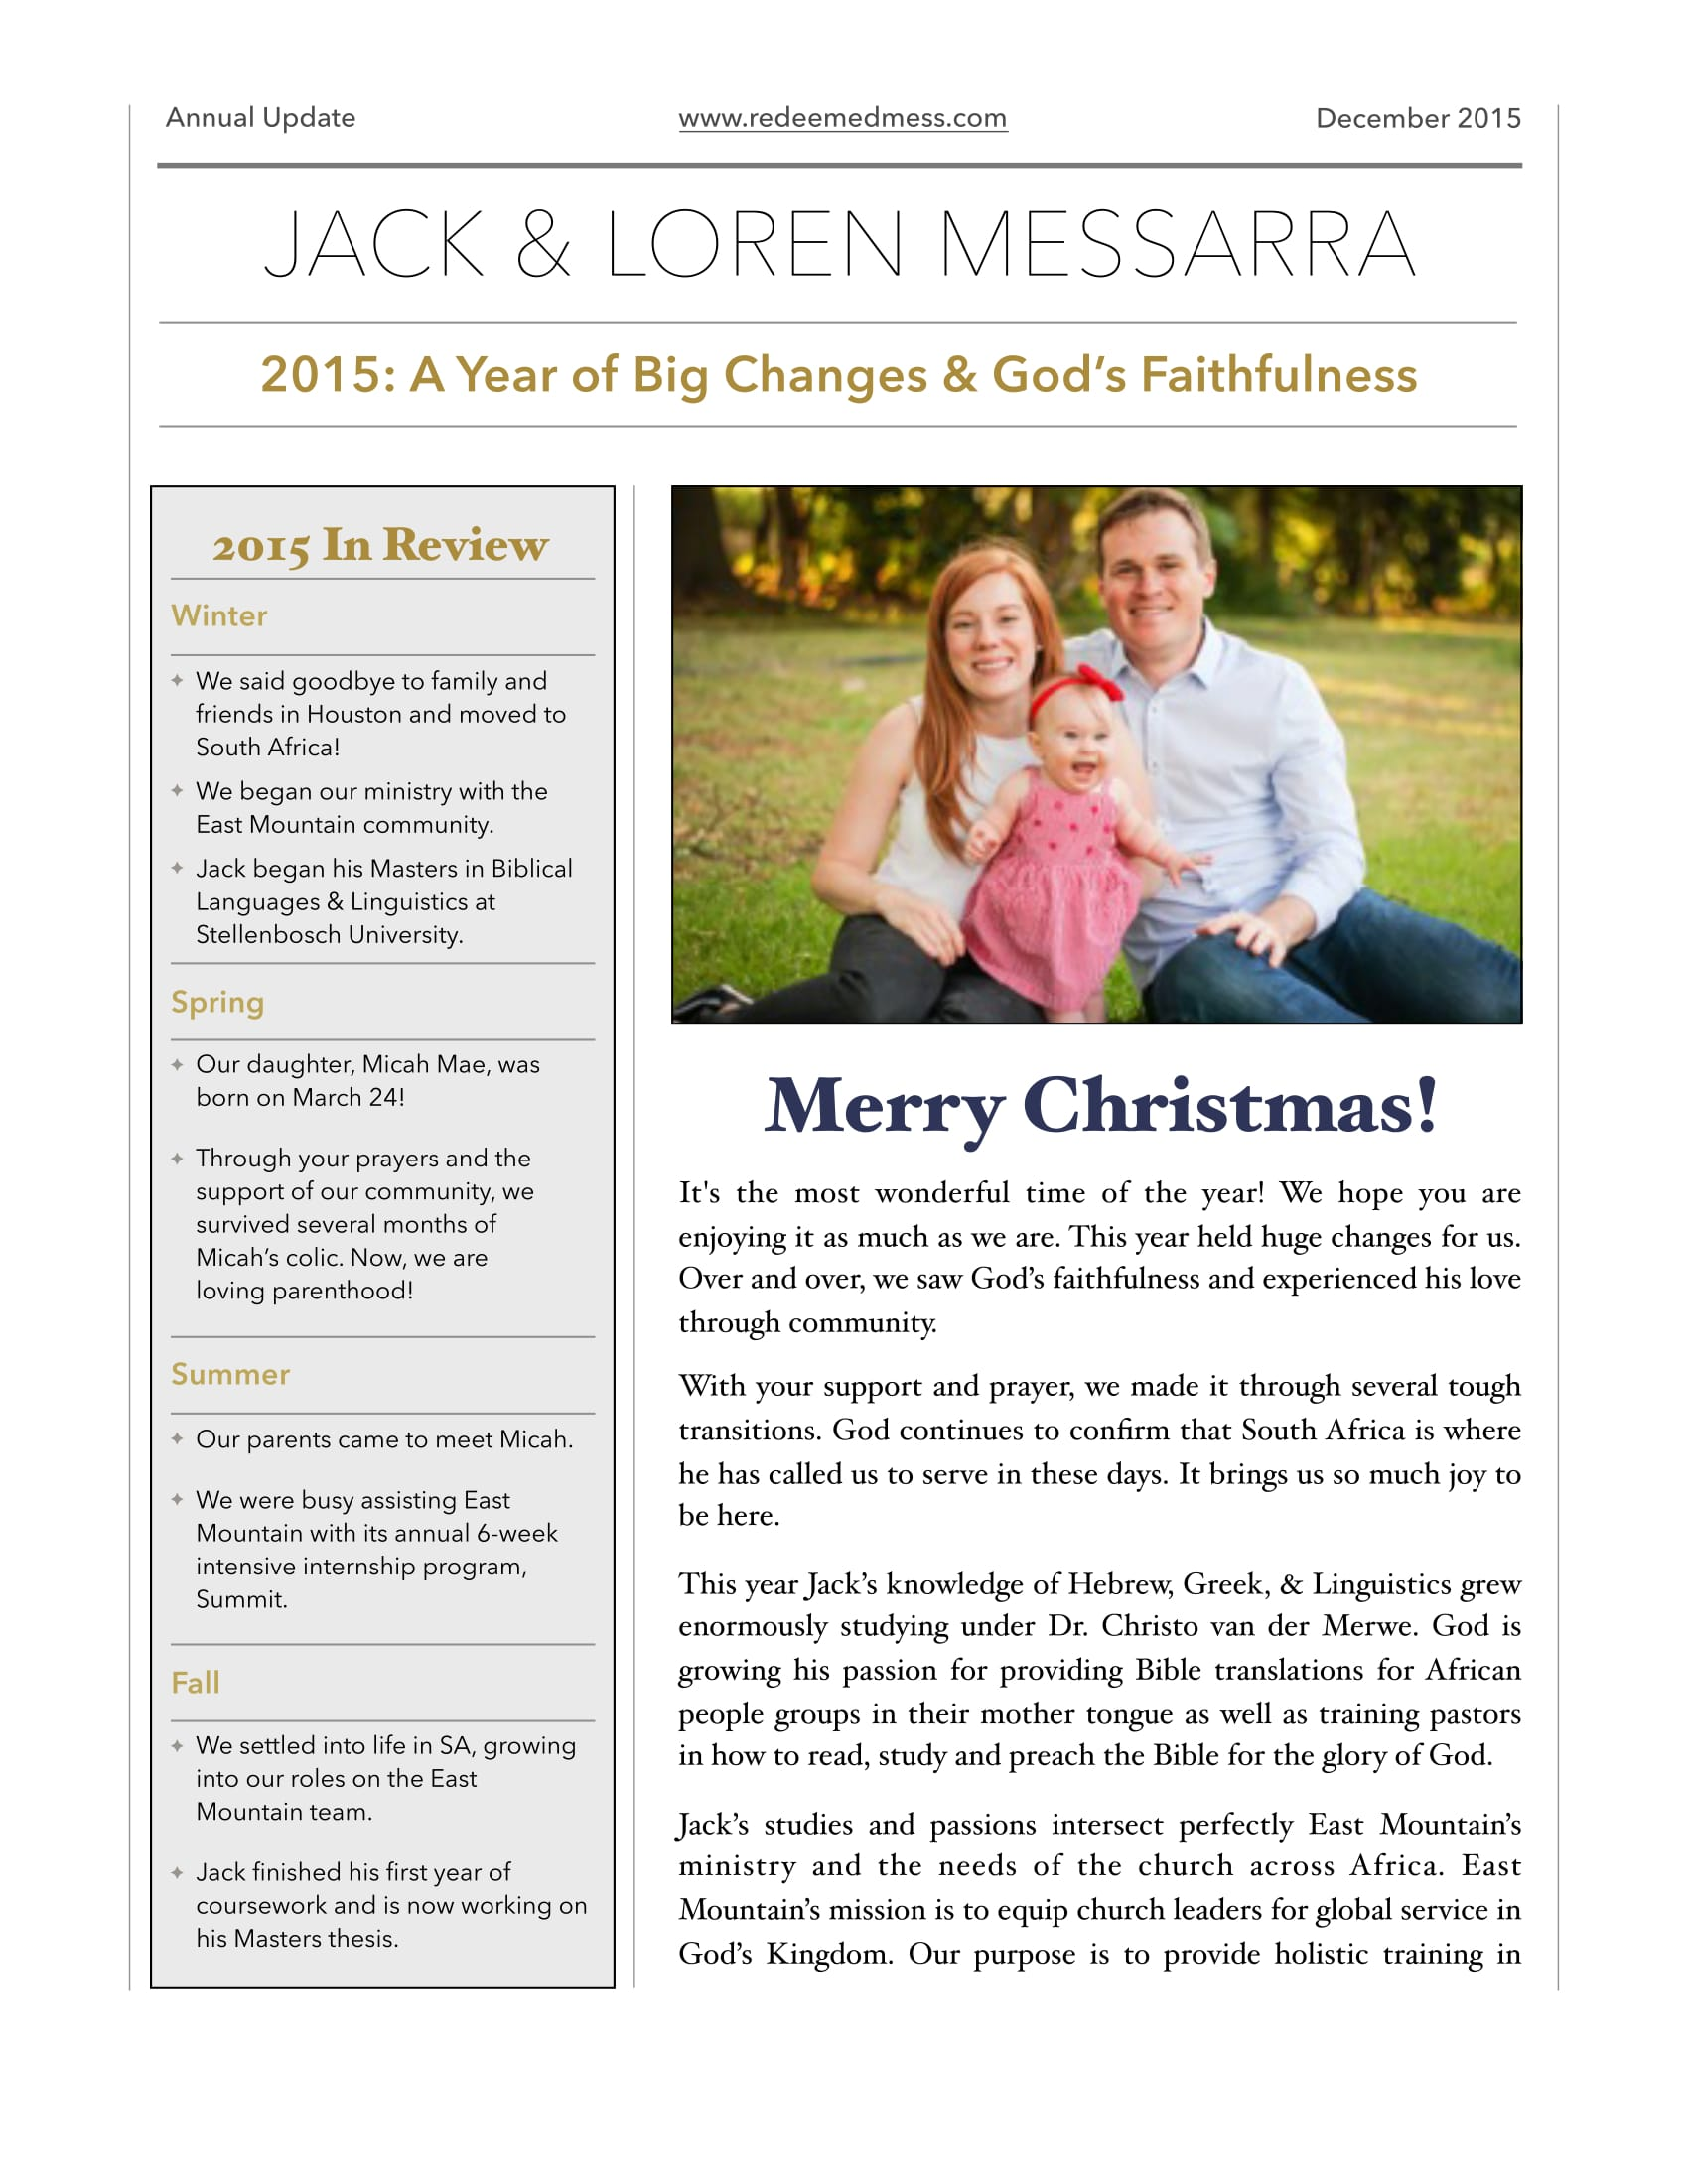 2015 Annual Review Xmas Letter Messarra -1.jpg